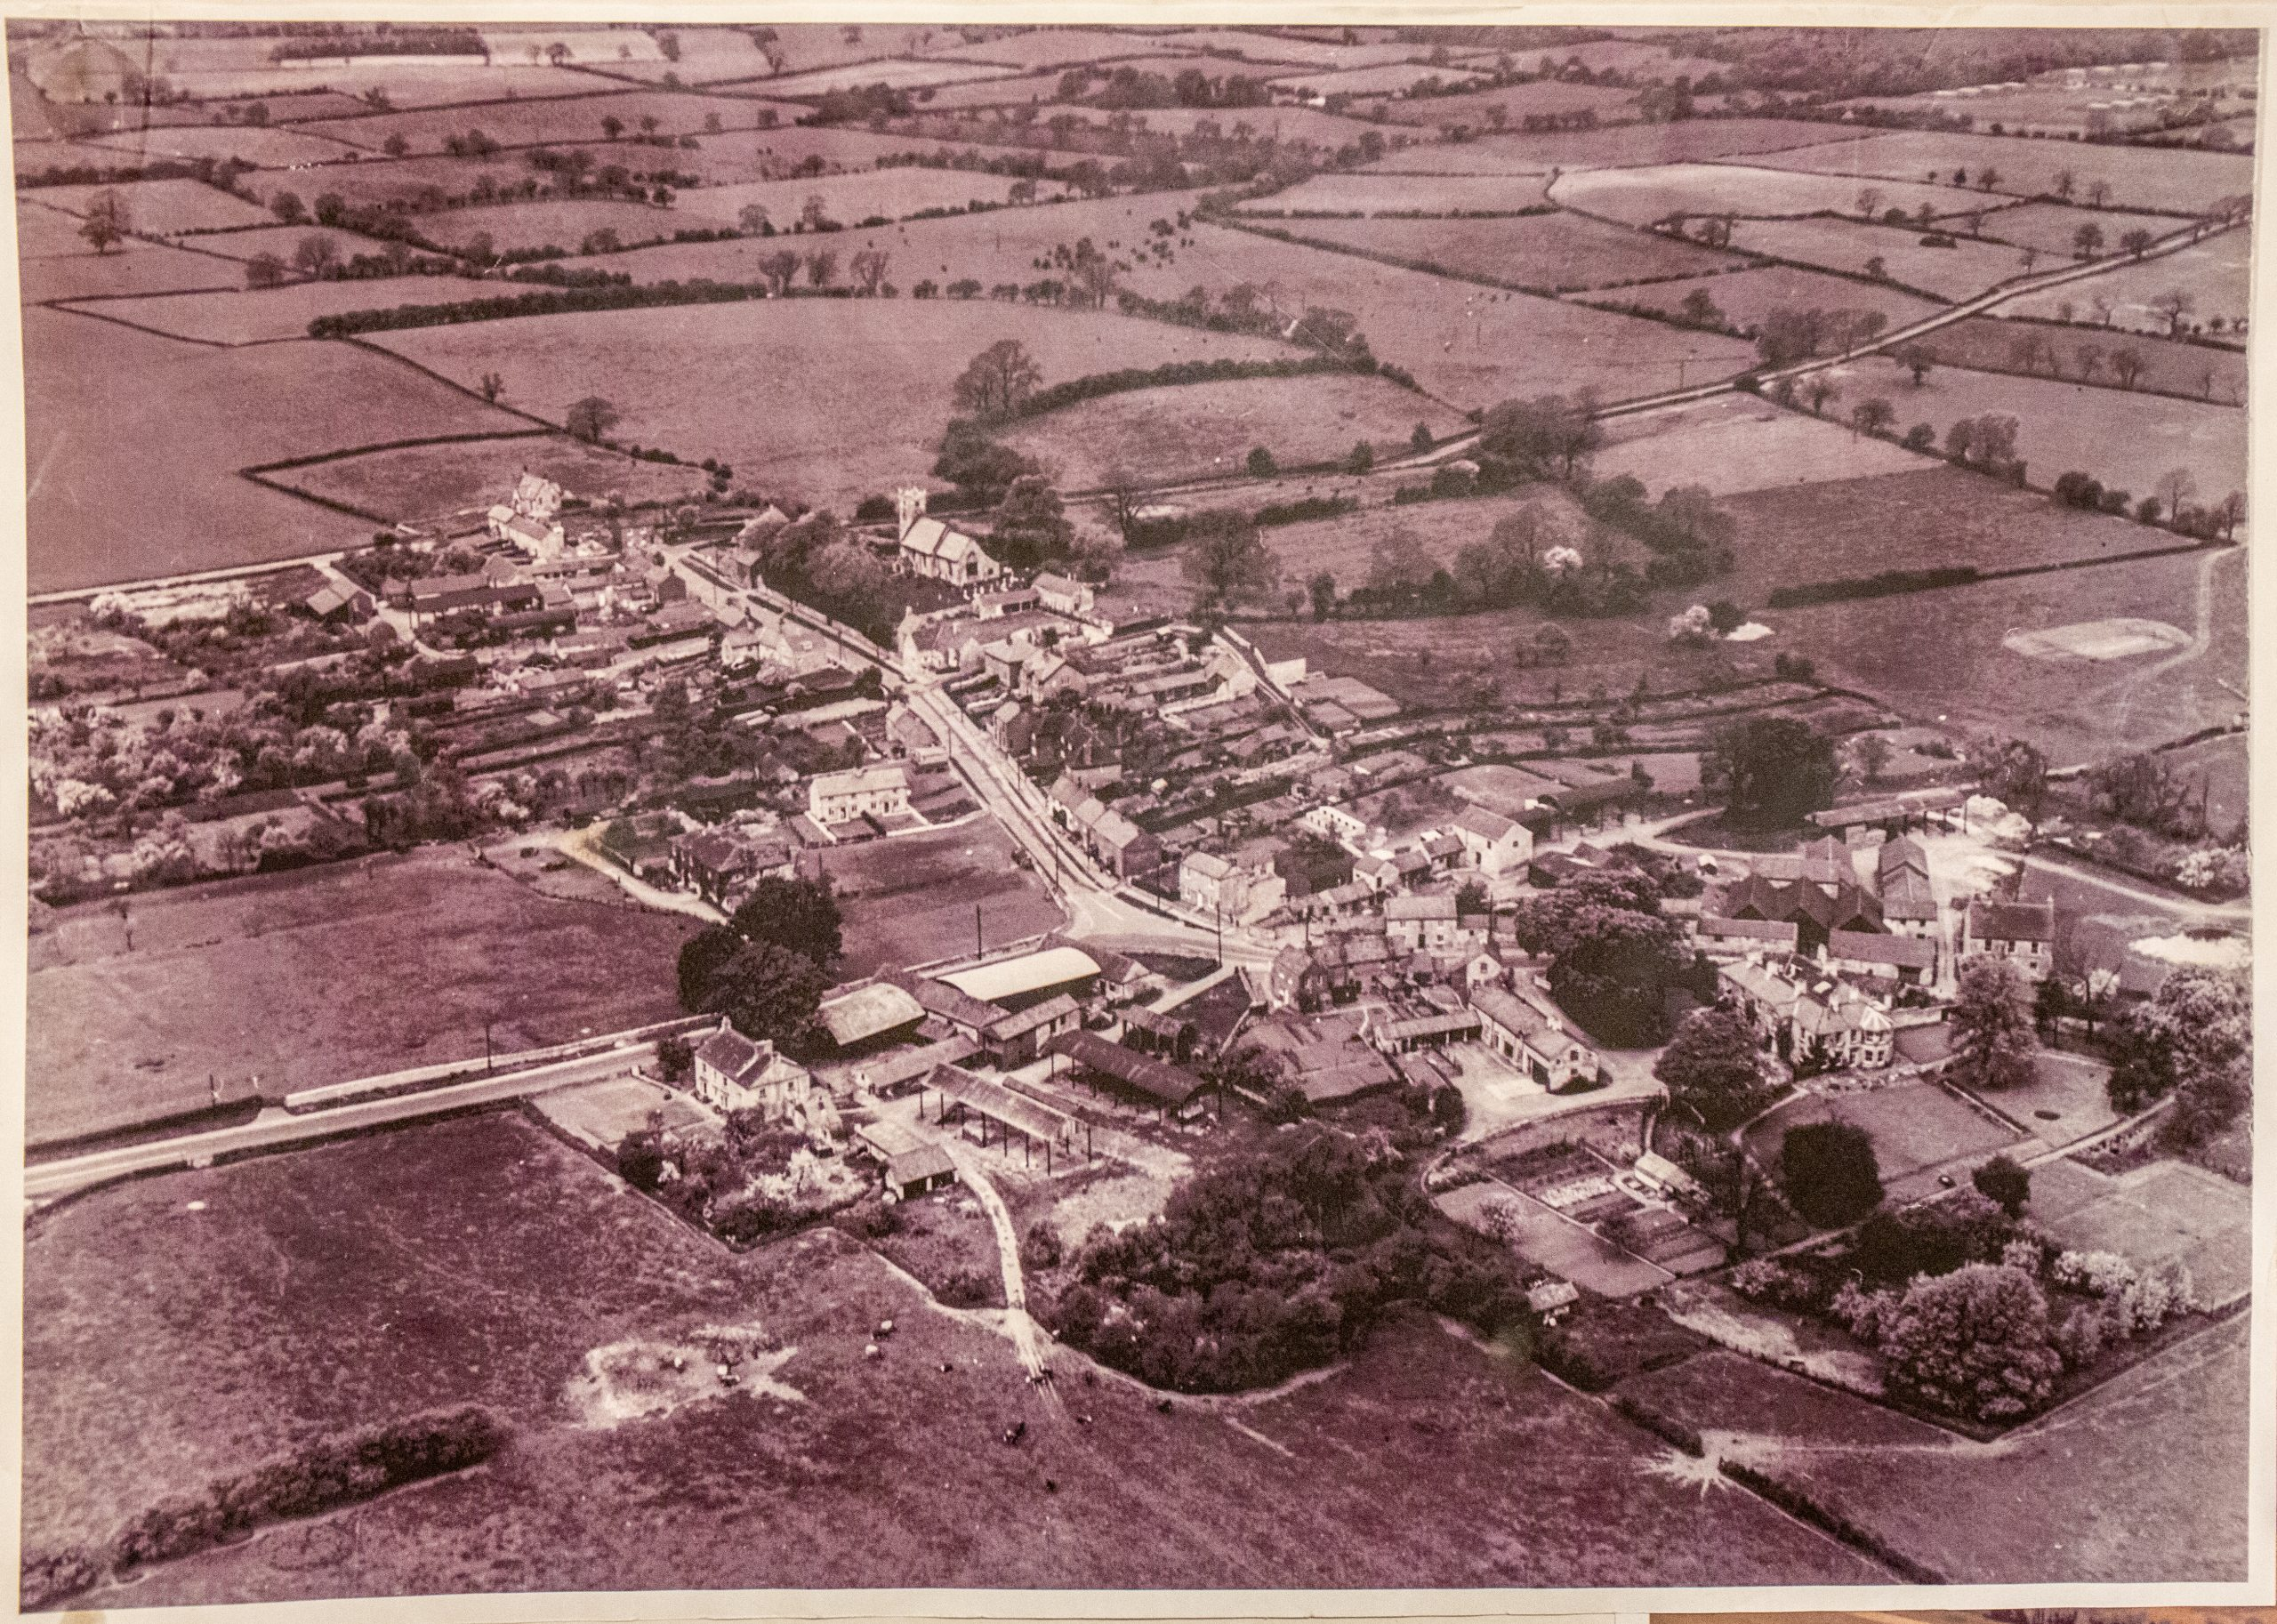 Ariel photo of Walton